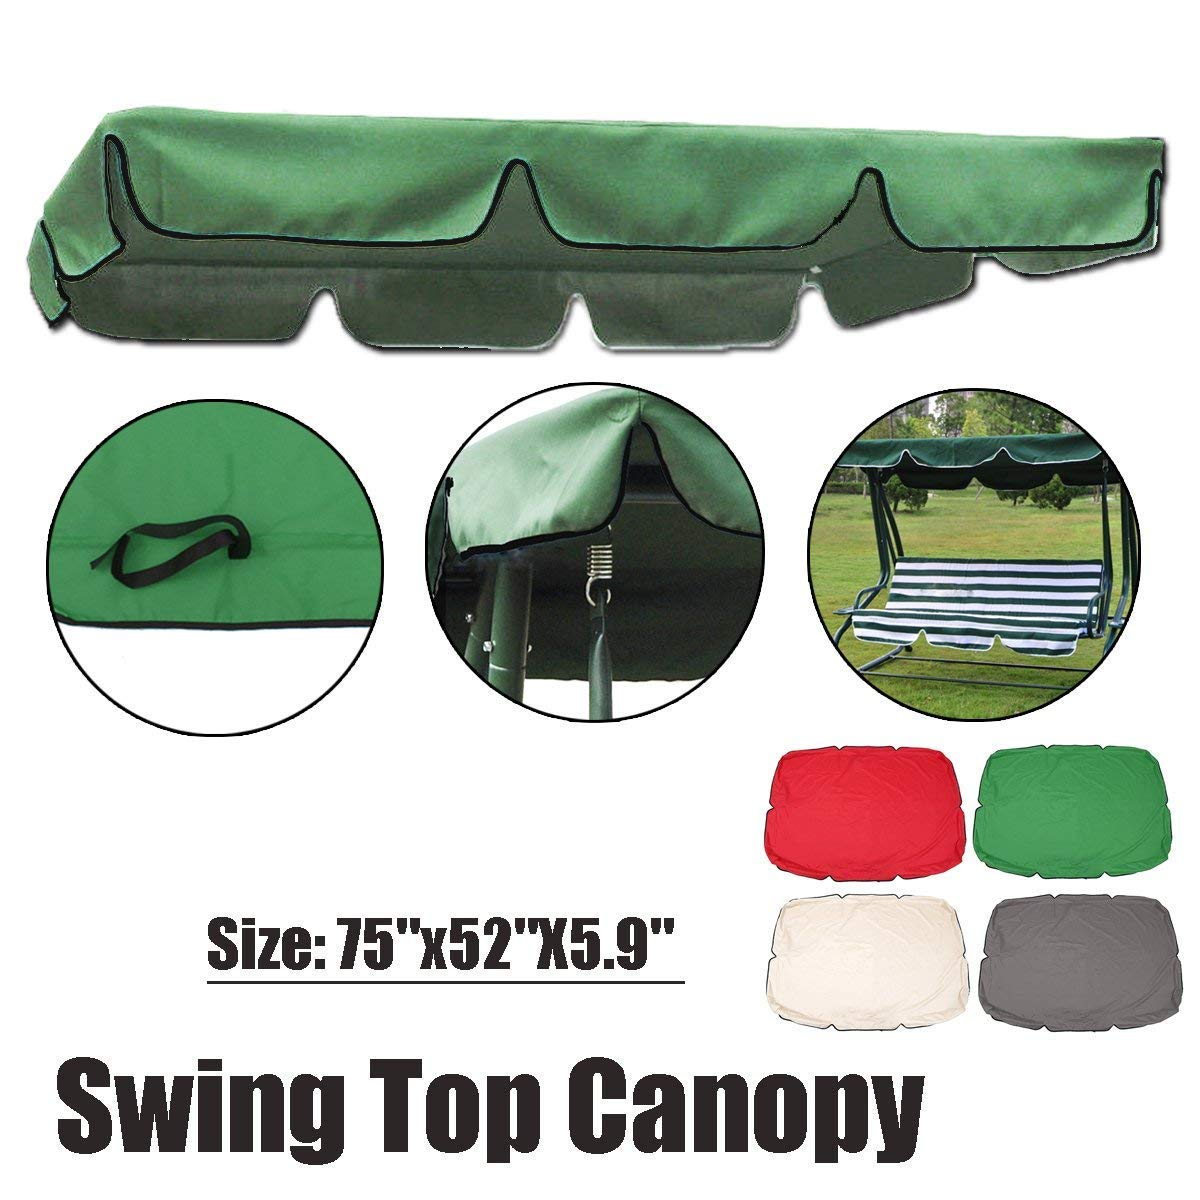 Essort Swing Canopy, 2 to 3 Seaters Waterproof Anti-UV Swing Top Cover Canopy Replacement for Outdoor Porch Patio Swing and Garden Hammock, 75'' × 52'' × 5.9'' Green